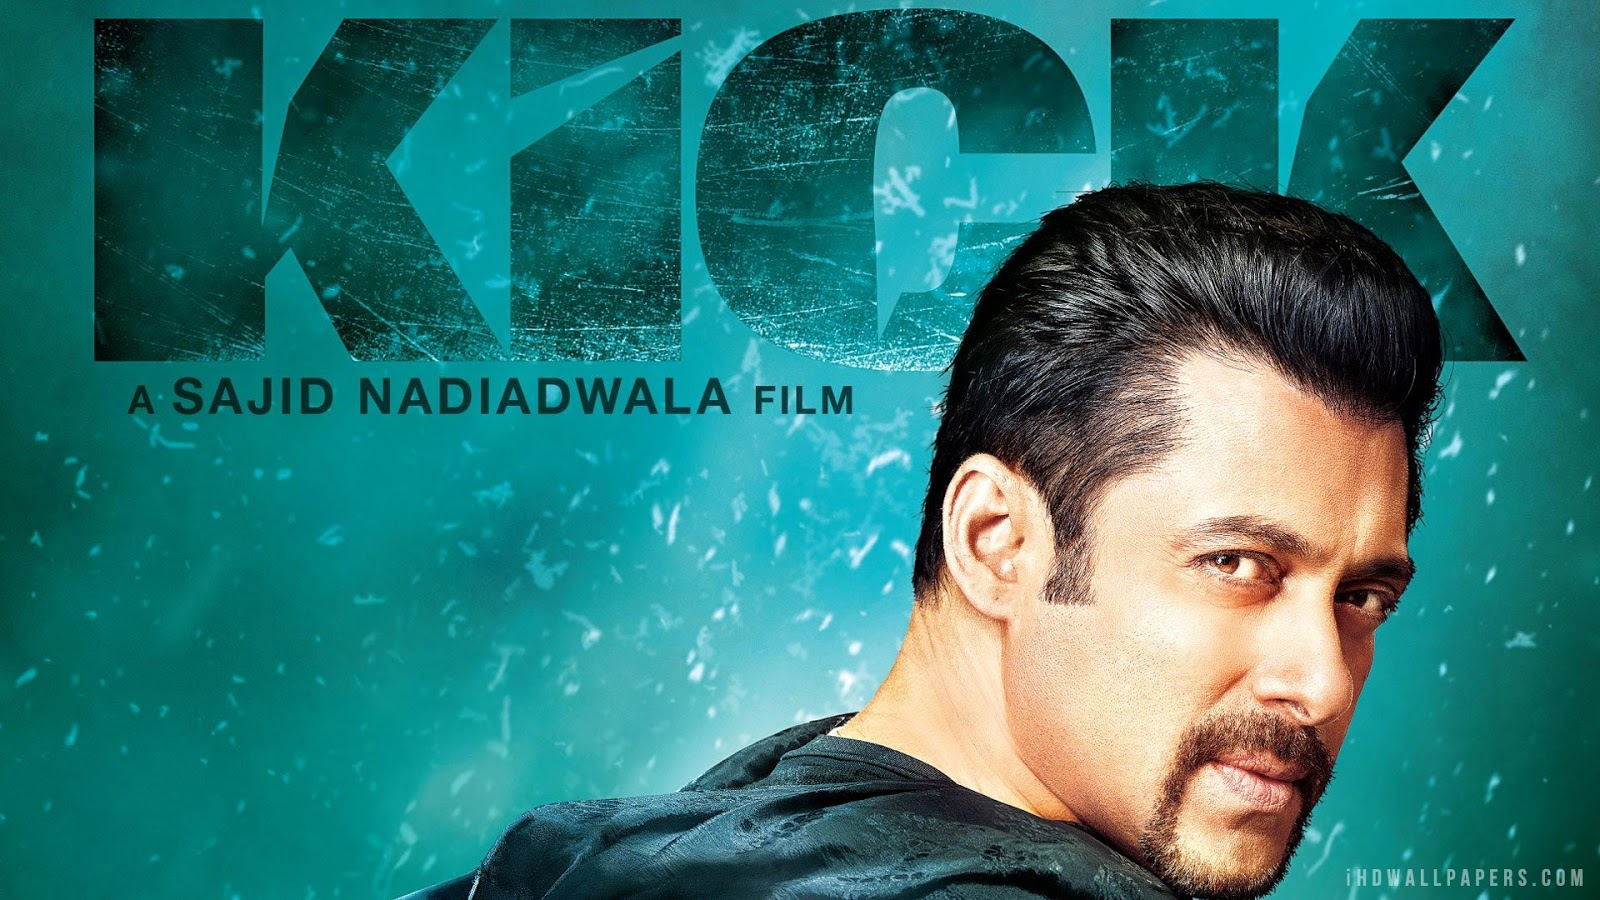 Salman Khan in Kick Movie wallpaper HD